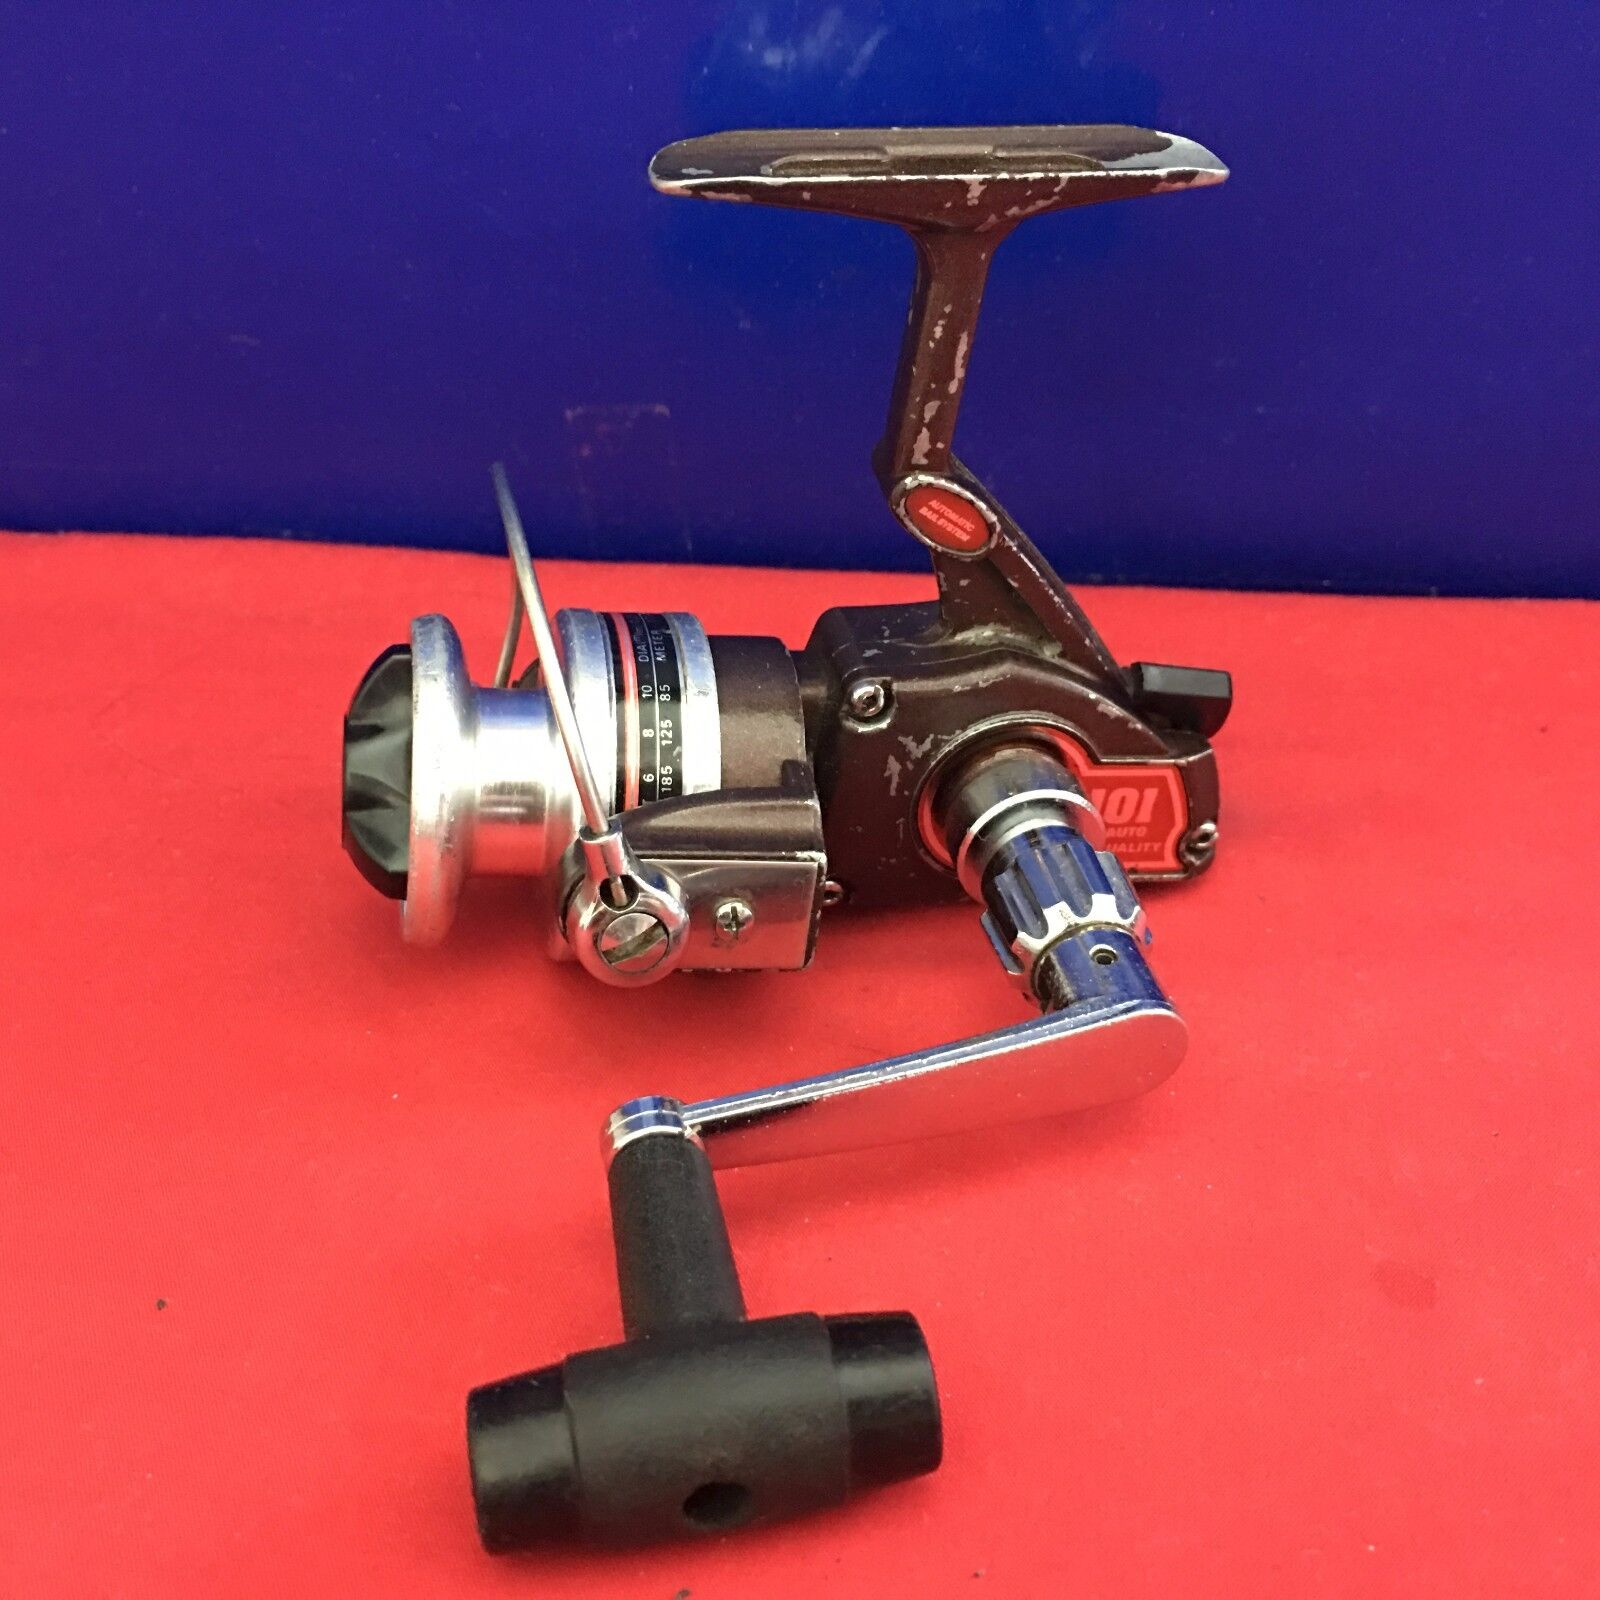 Vintage Olympic 101 Vo Auto Spinning Fishing Reel Ebay